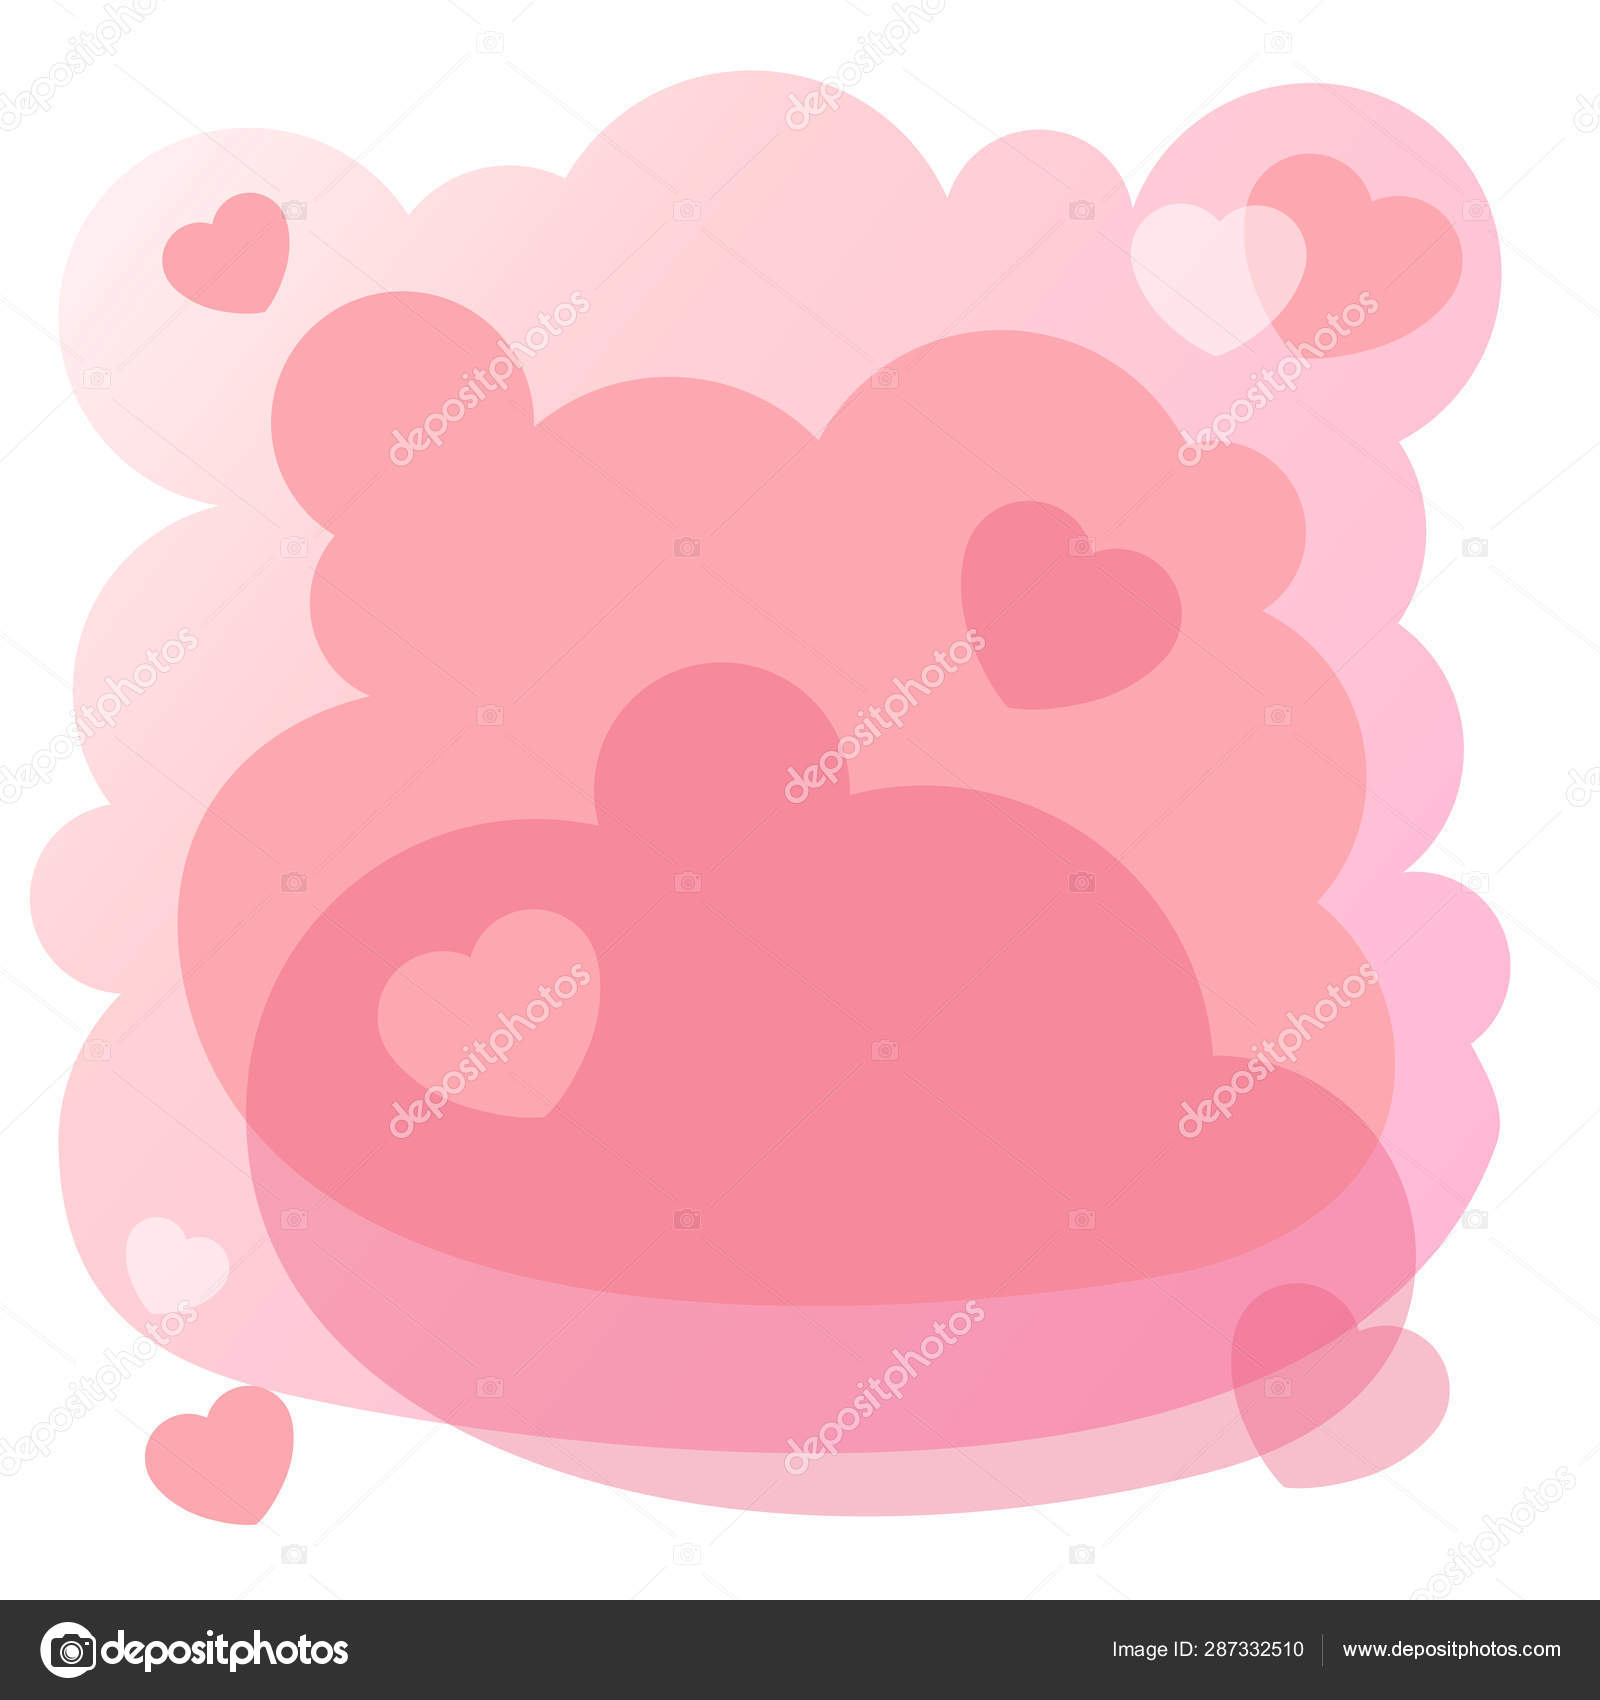 Cute Pink Background Design Wallpapers Books Invitations Baby Shower Valentines Stock Vector C Natasha Tpr 287332510